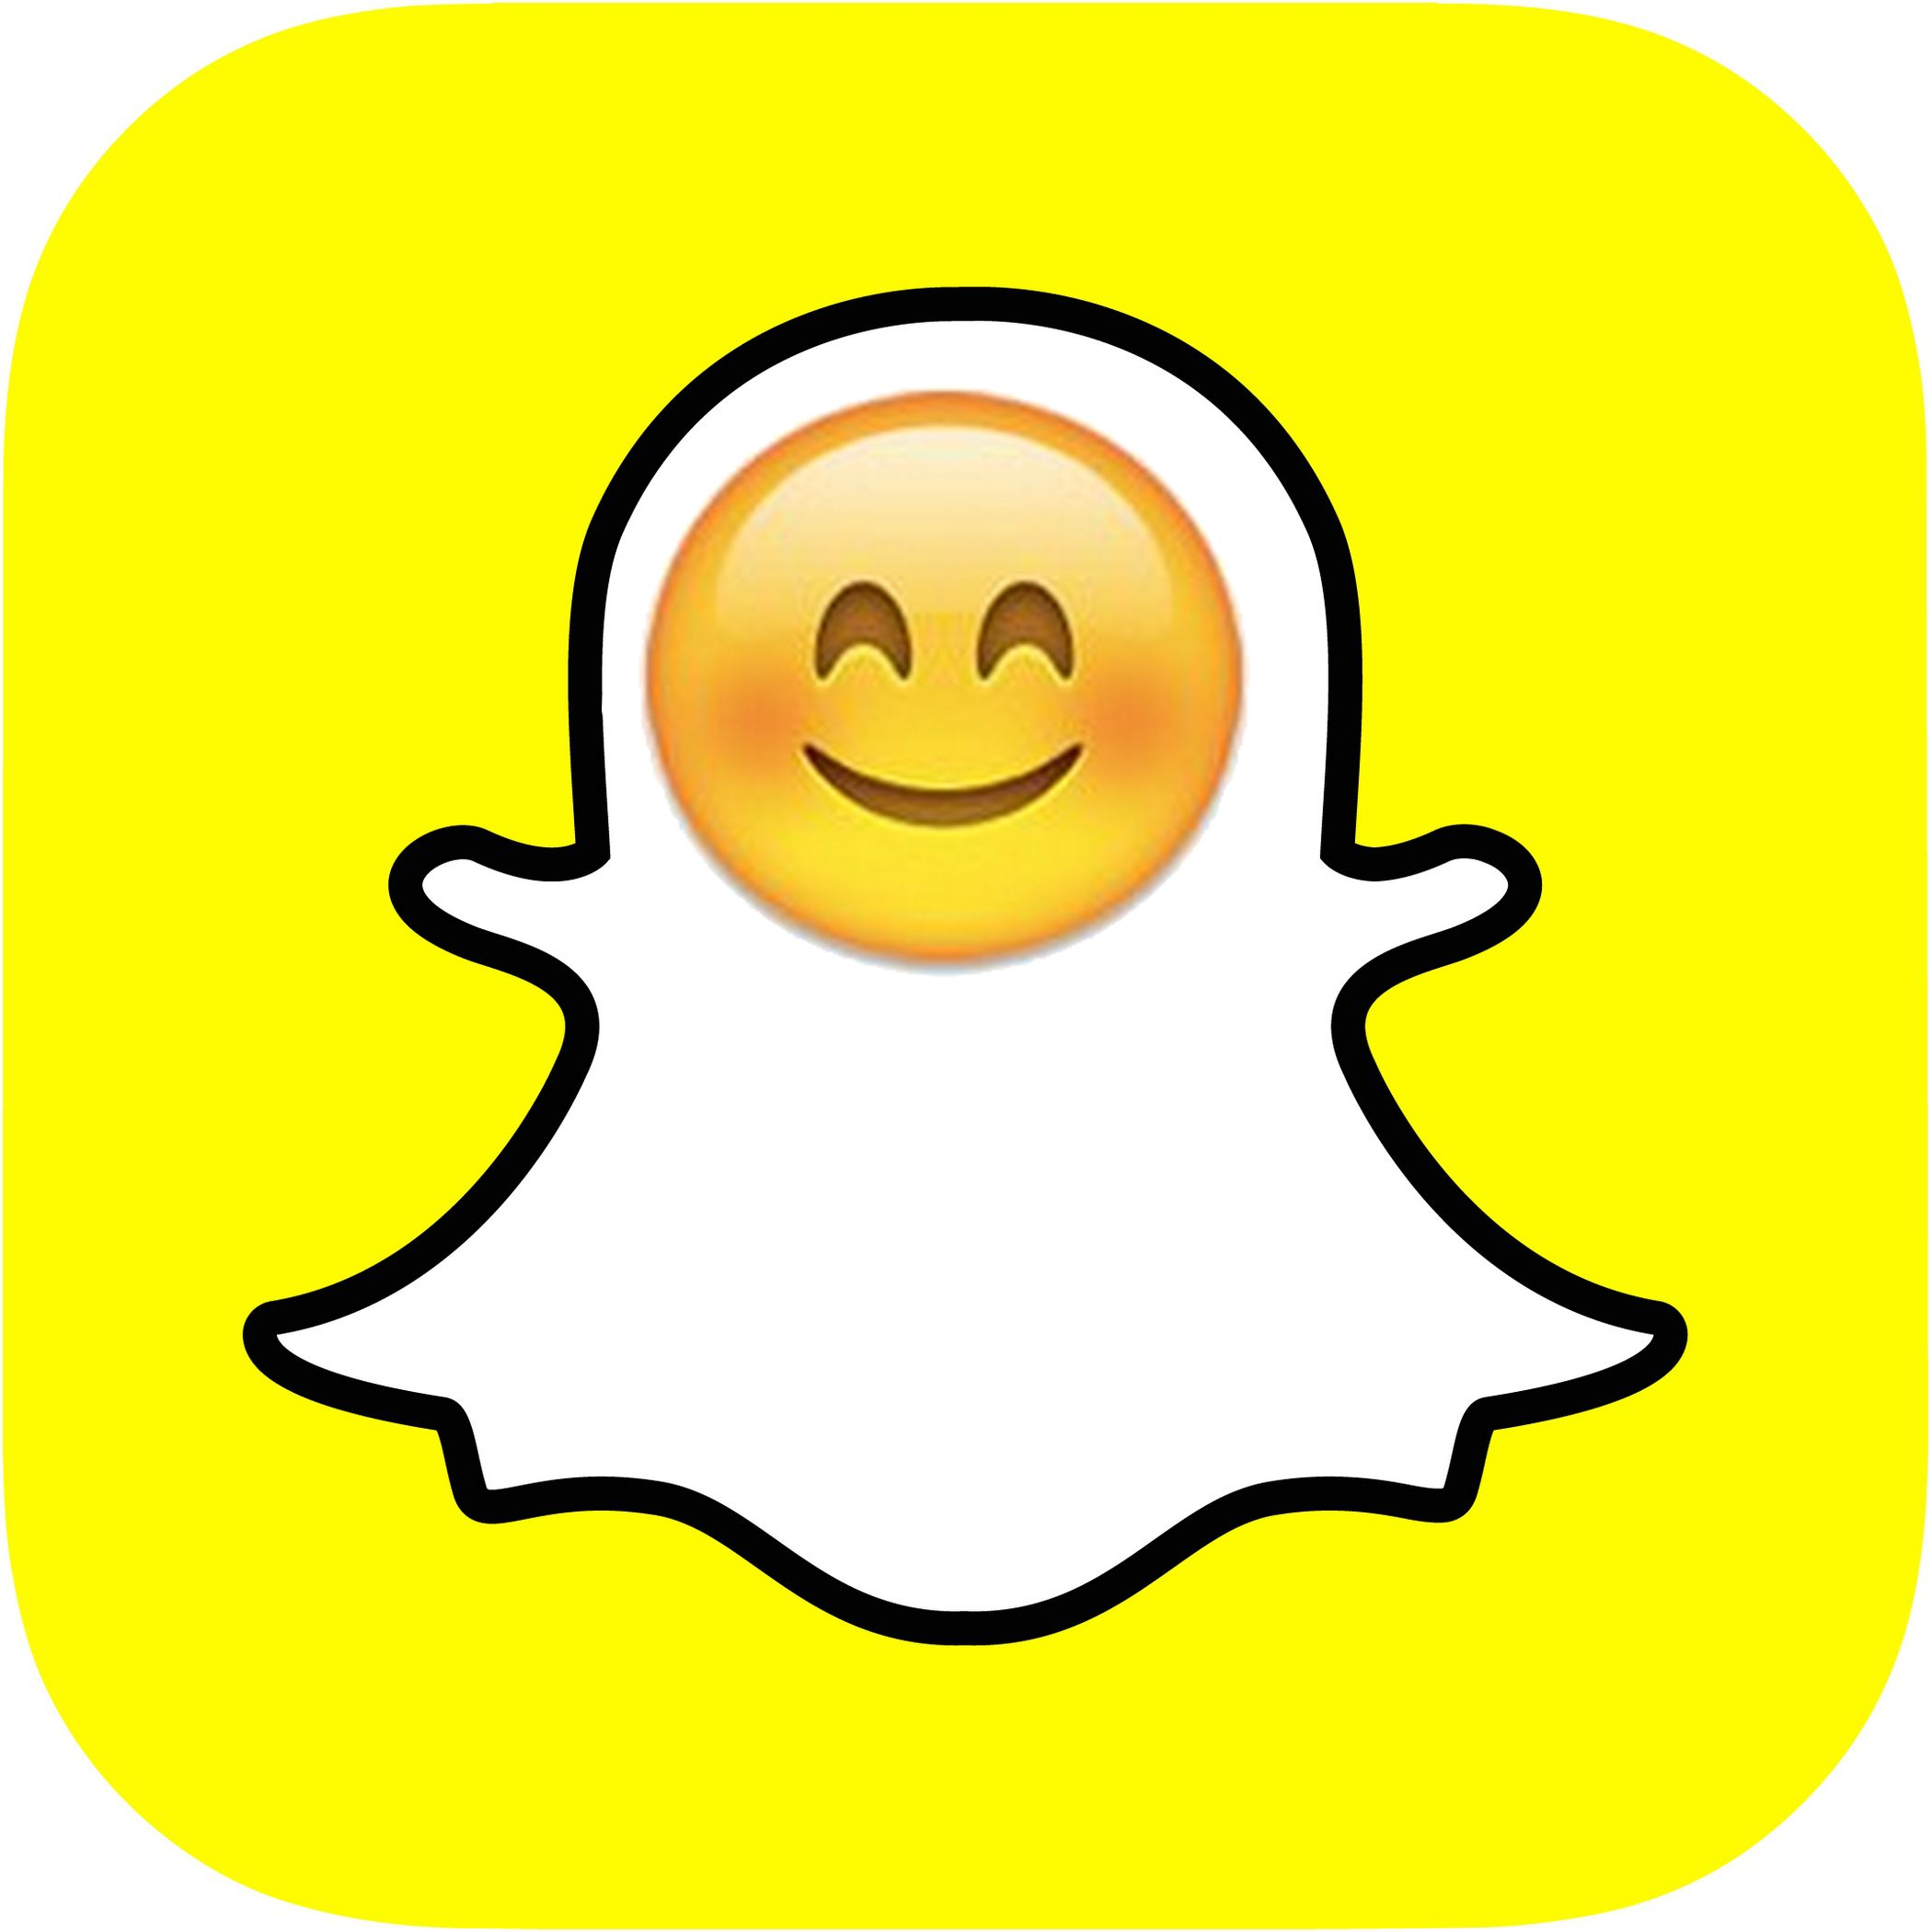 Alien face in box emoji meanings - Confused About The New Snapchat Emoji And Trophy Case Items Meanings And How To Get